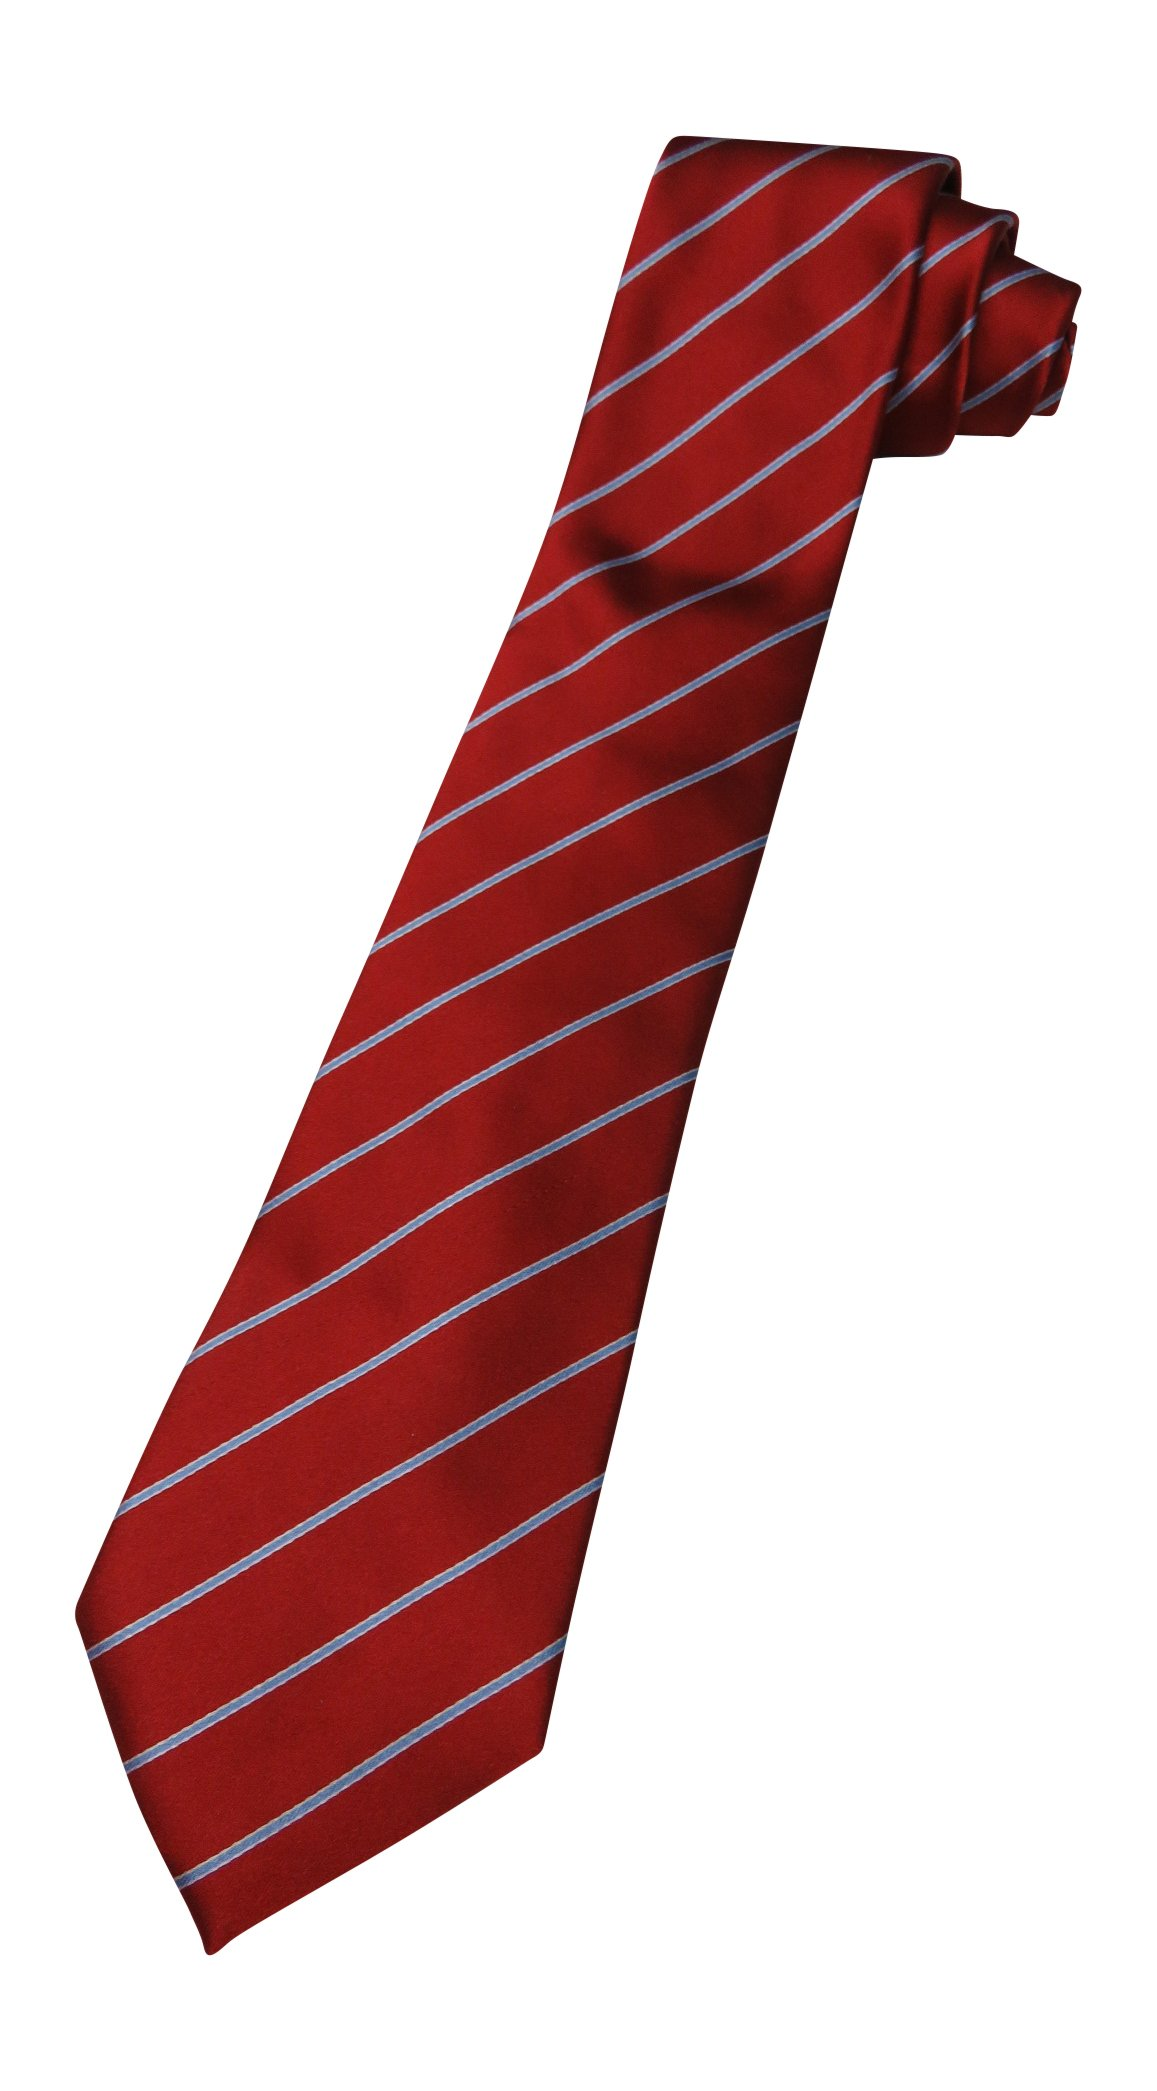 Donald Trump Neck Tie Red, Blue and Silver Striped